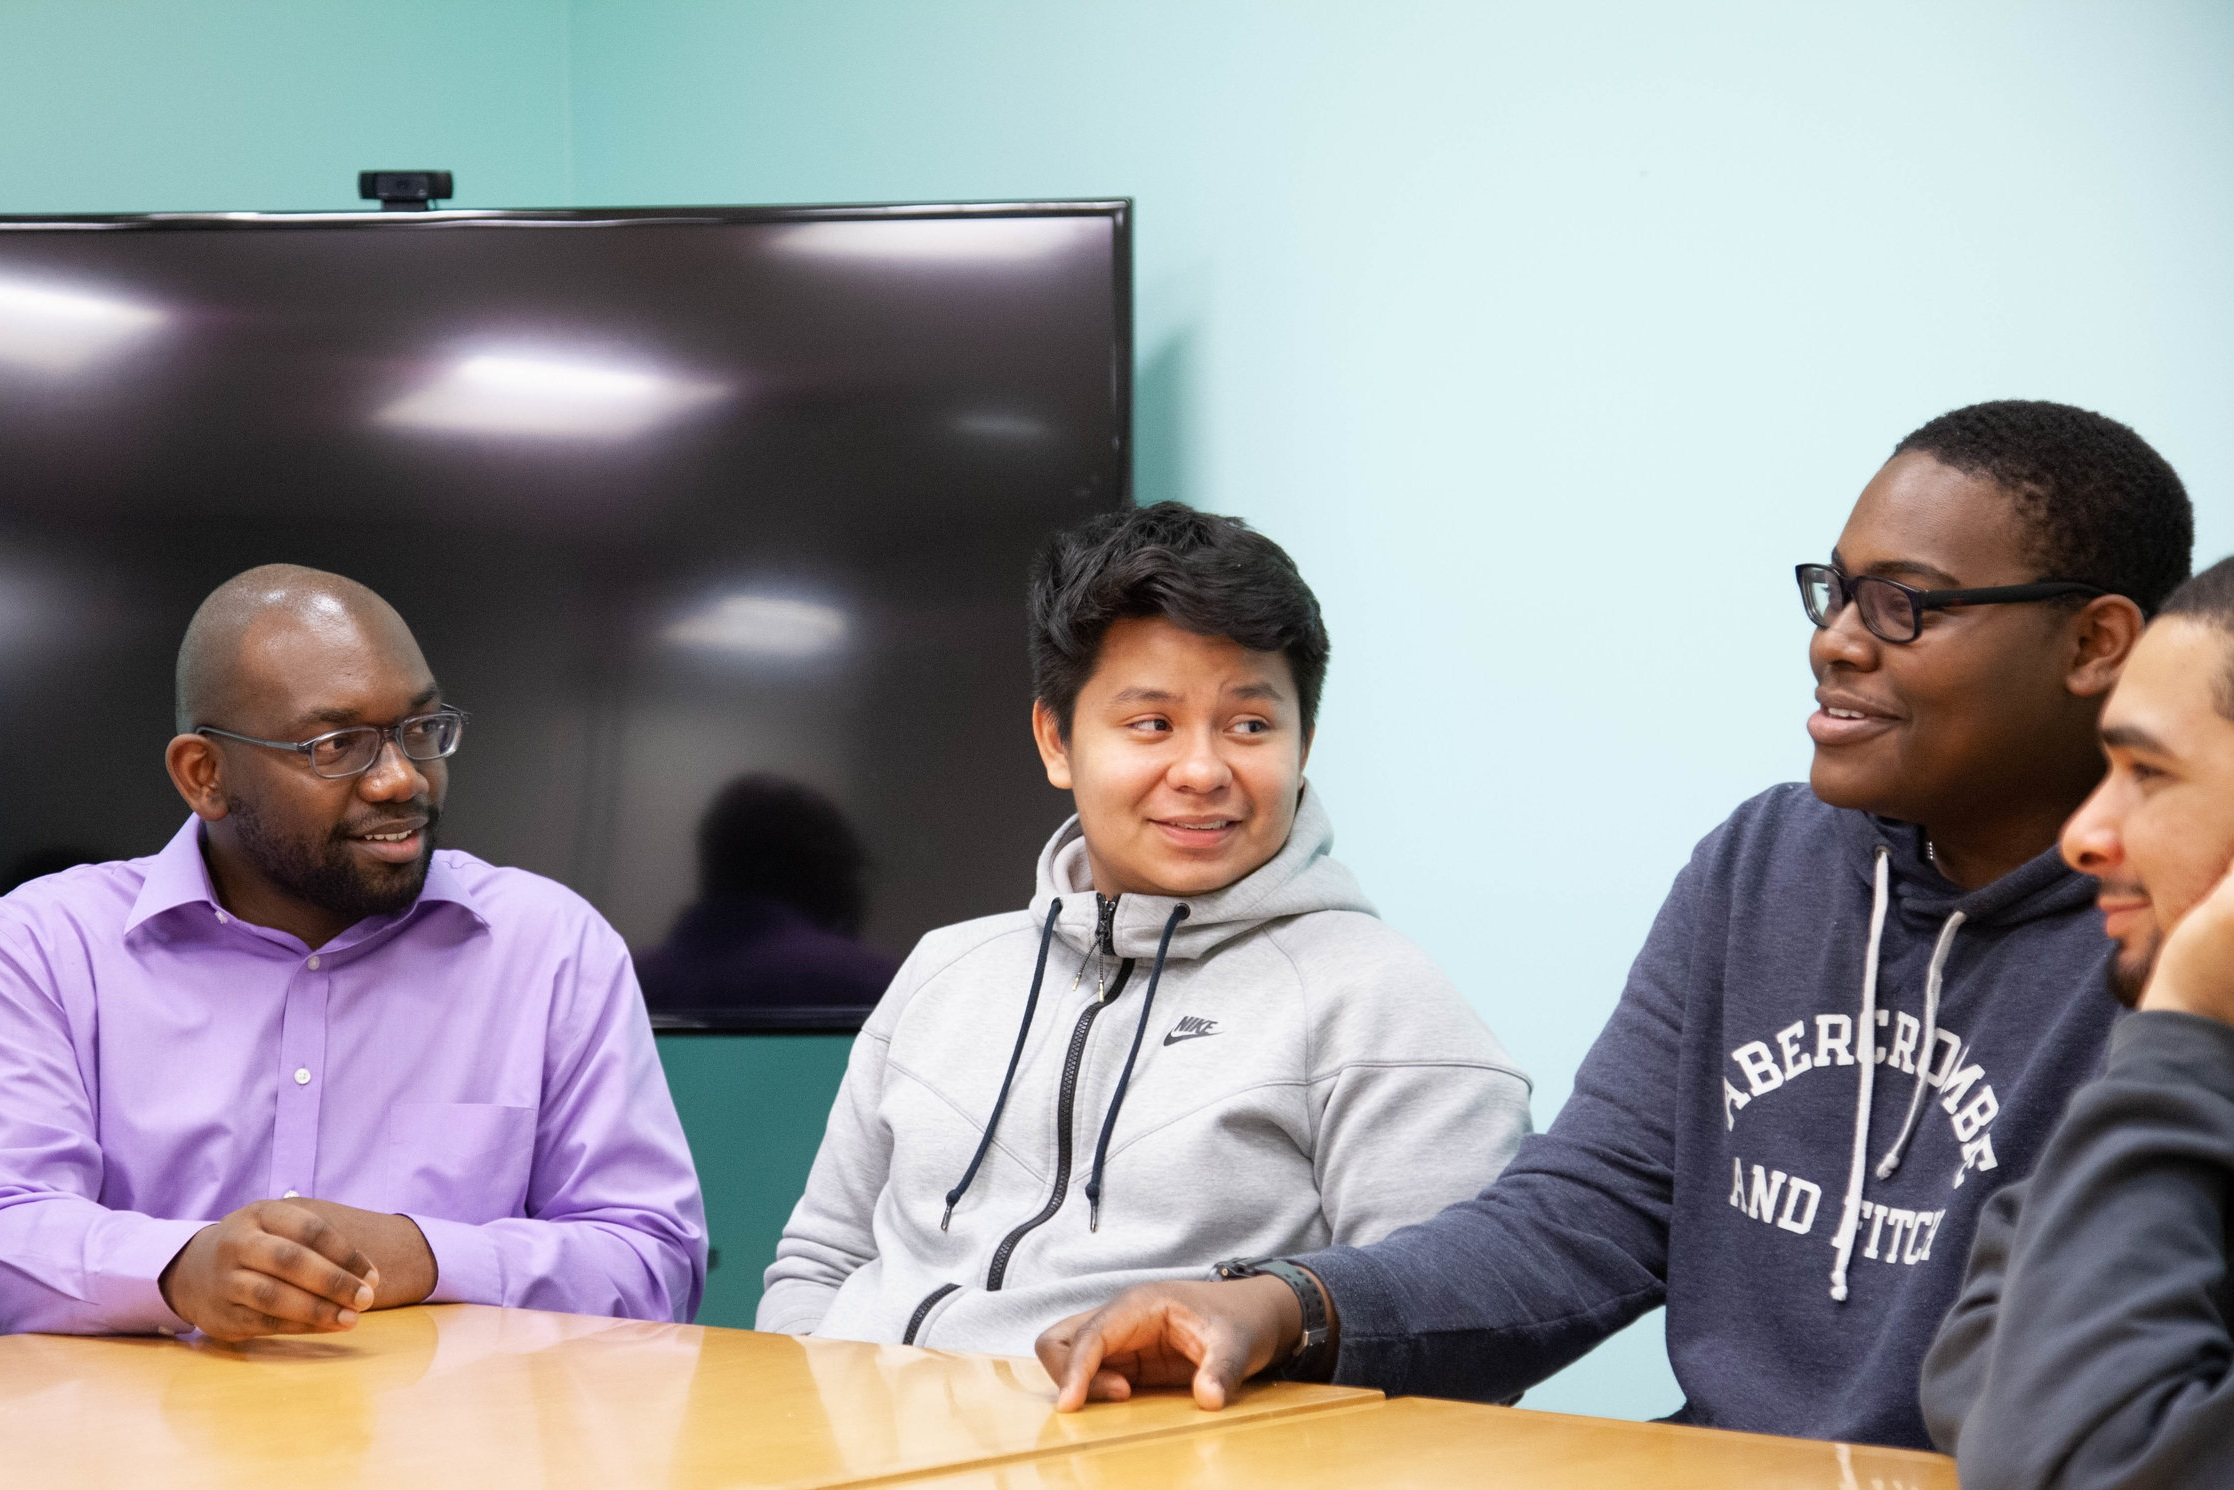 Ayinde works with Teo (BEAM '14), Jahleel (BEAM '15), and Zyan (BEAM '15) at the Young Men's Empowerment Group. Photo taken by Peter Dressel.